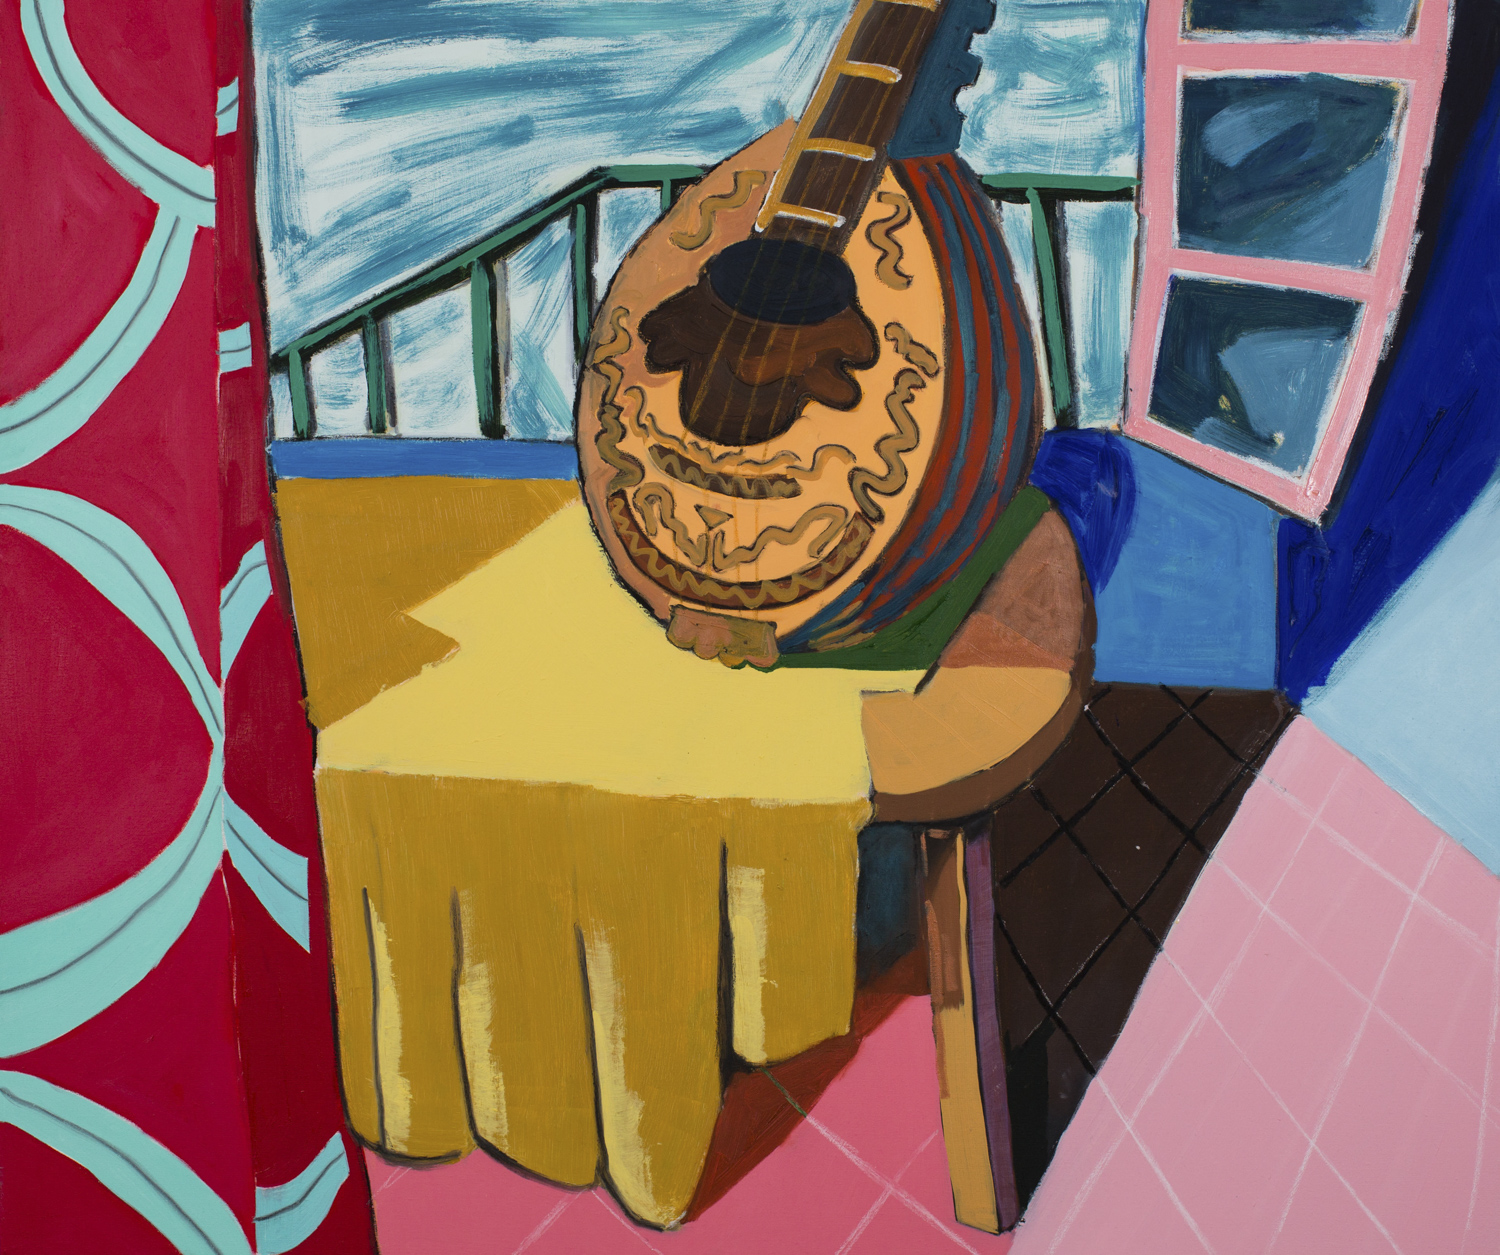 Guy Levy, Mandolin, oil on canvas, 2018 (photo by the artist)